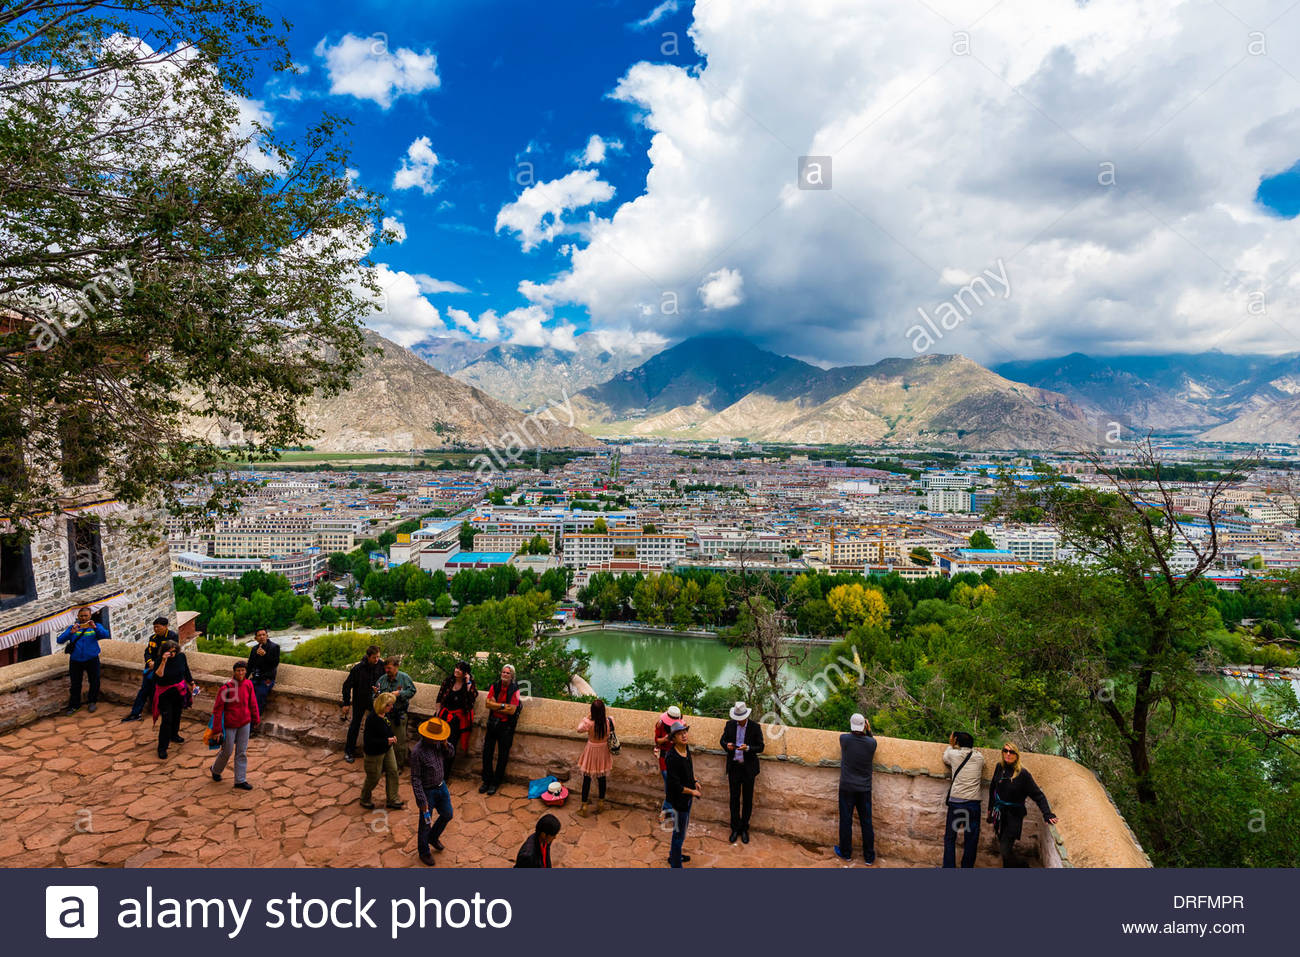 Overview of the Lhasa skyline from the Potala Palace (a UNESCO World Heritage Site) was the chief residence of the Dalai Lama until the 14th Dalai Lama fled to Dharamsala, India, during the 1959 Tibetan uprising. The massive palace contains 999 rooms. Lhasa, Tibet, China. - Stock Image